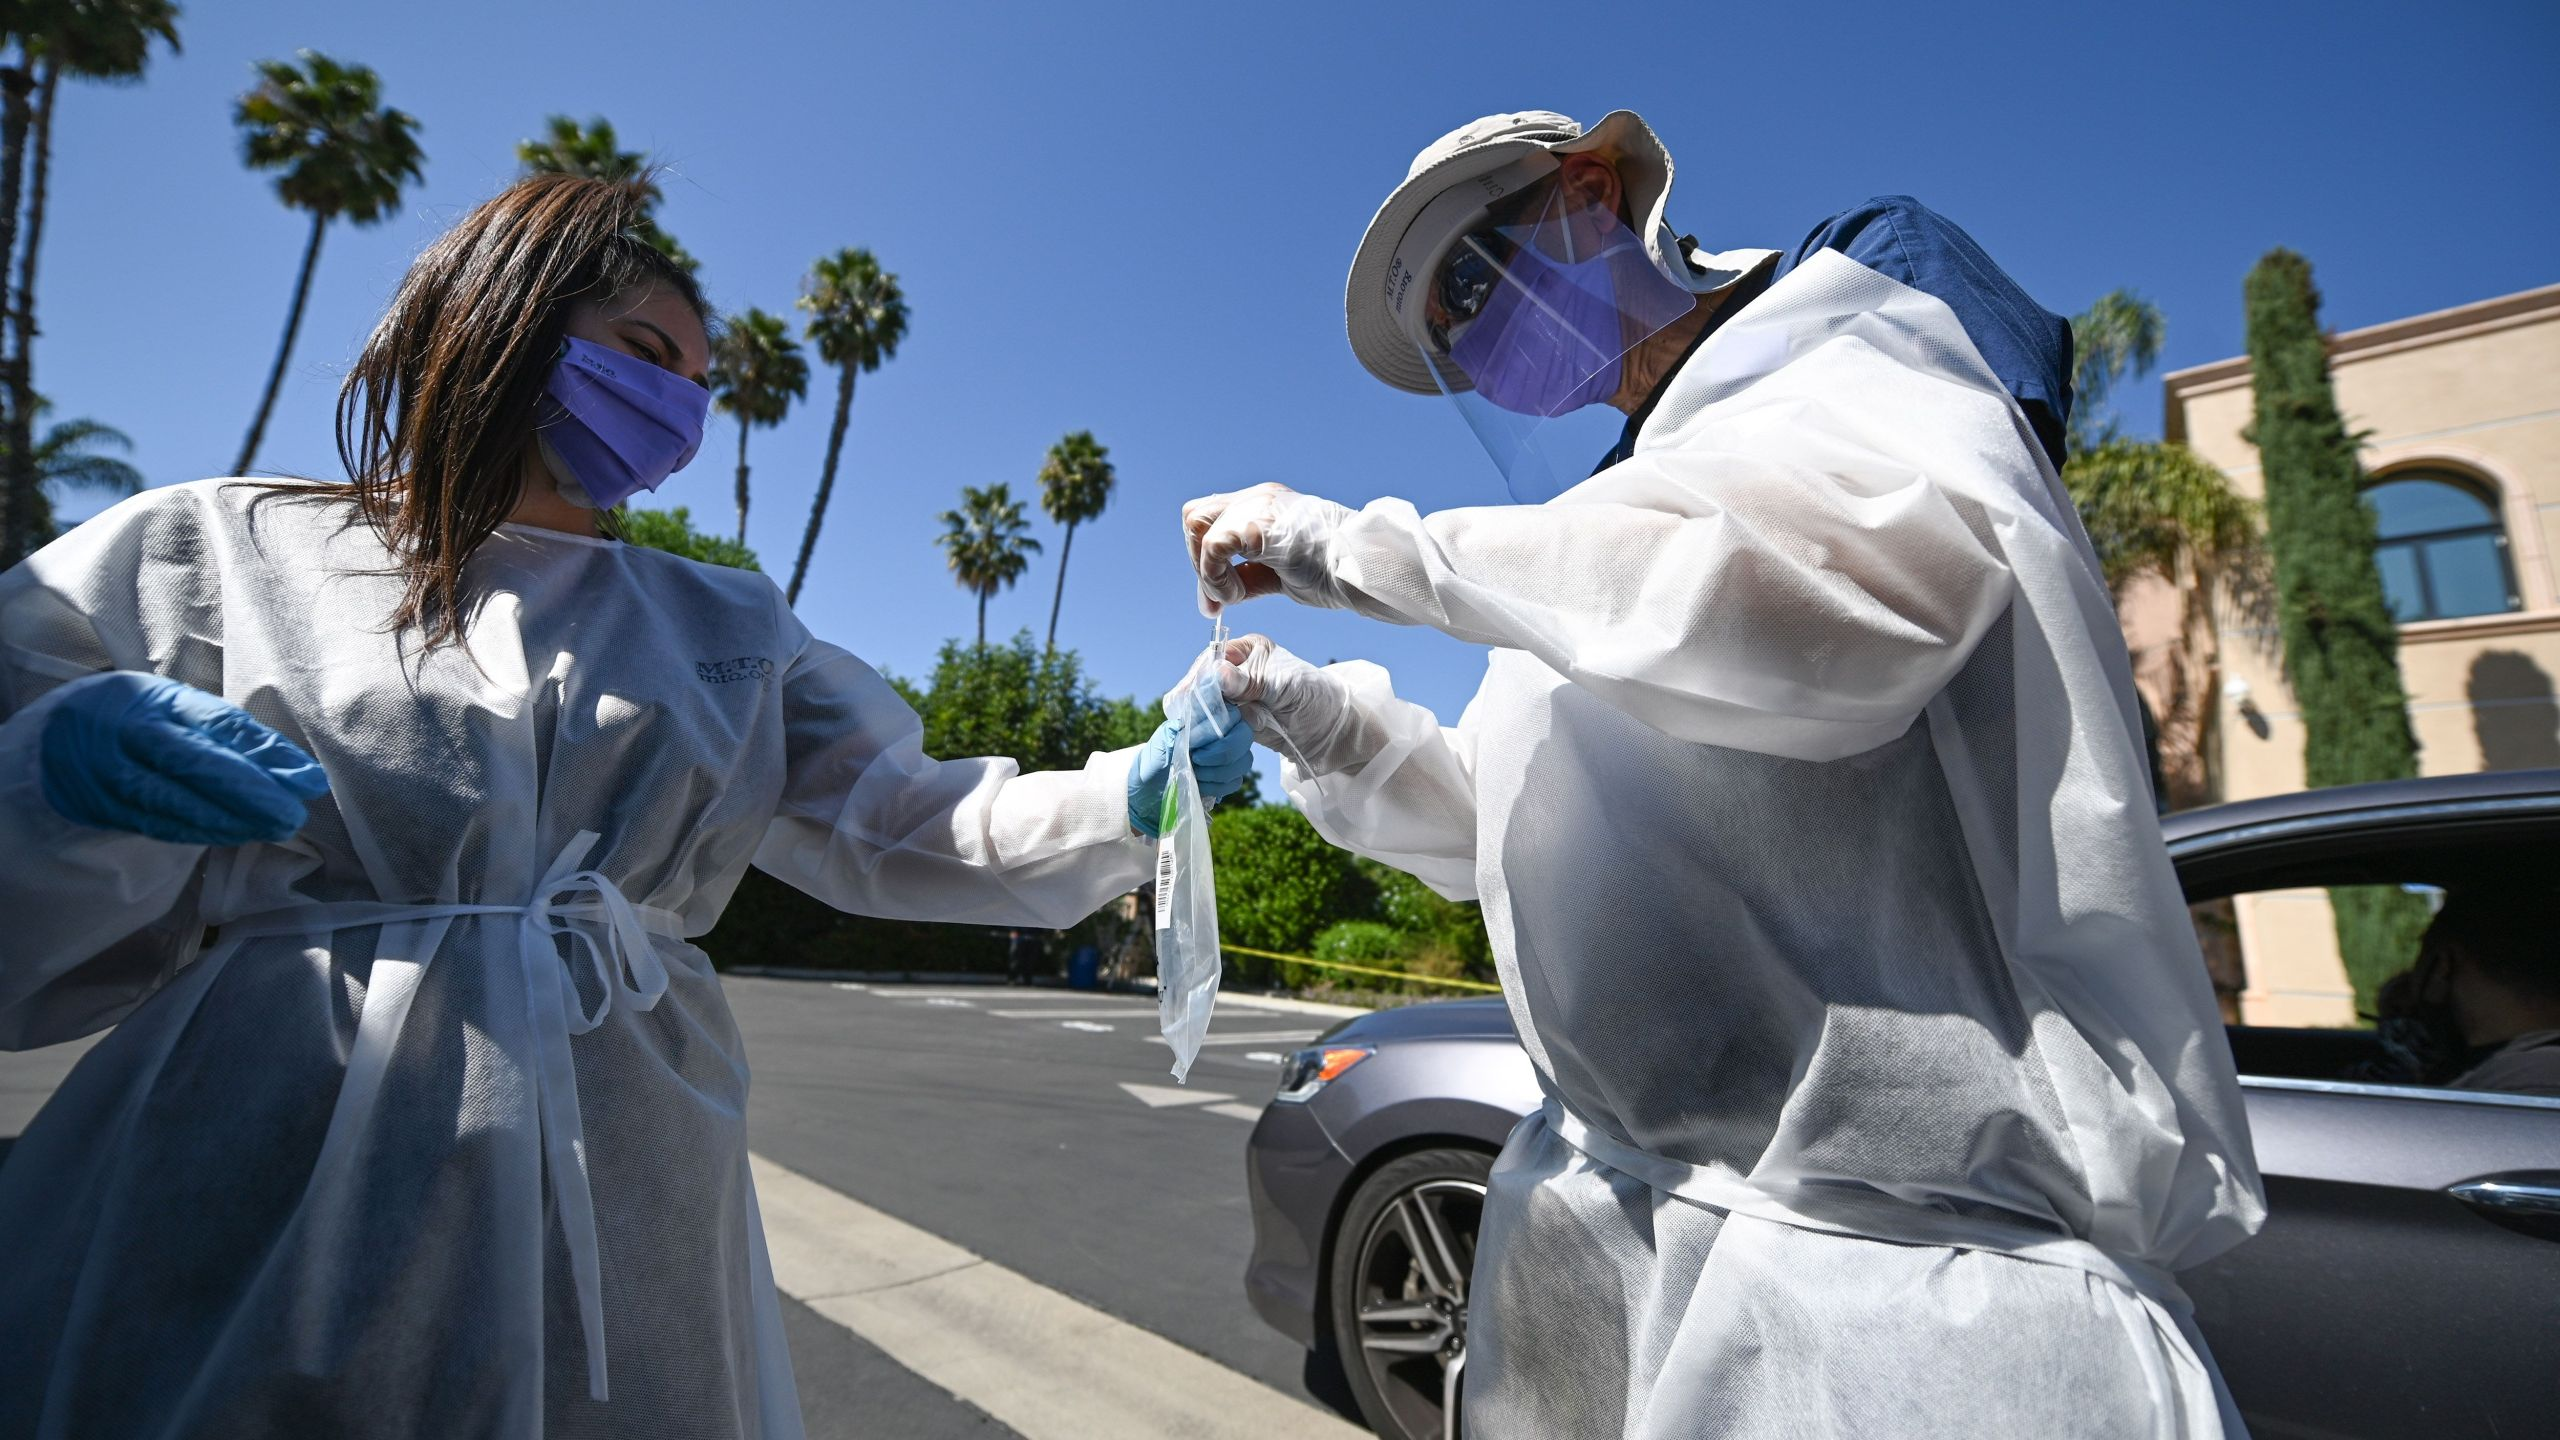 Healthcare workers collect a test sample at a drive-through coronavirus testing center at M.T.O. Shahmaghsoudi School of Islamic Sufism on Sept. 29, 2020 in Los Angeles. (Robyn Beck / AFP via Getty Images)